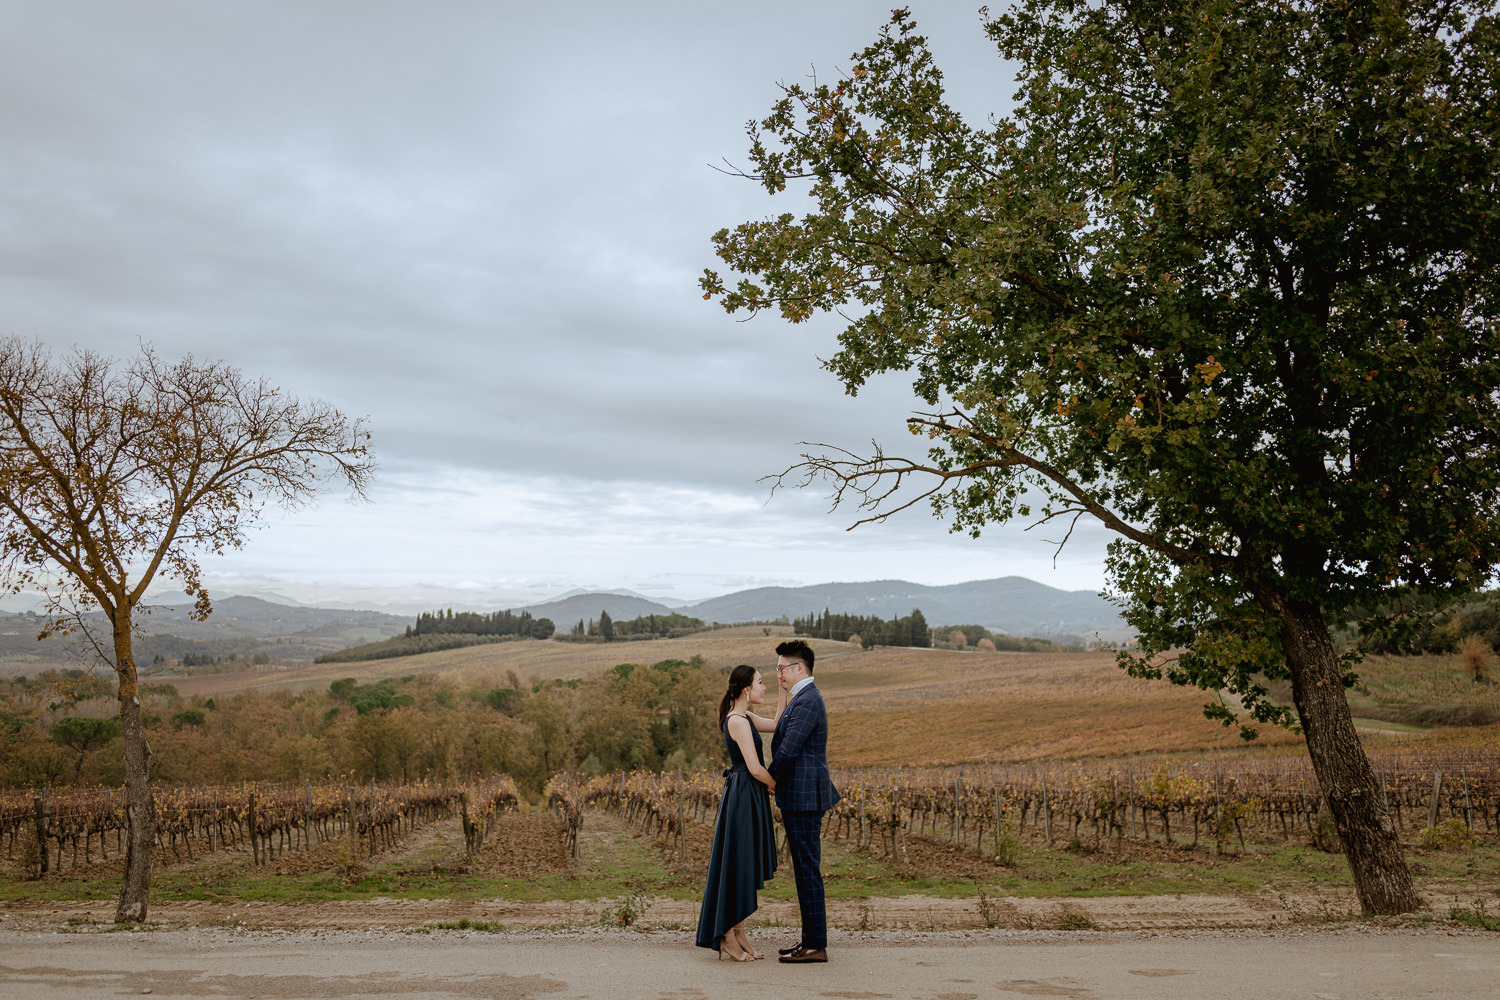 winter wedding proposal tuscany chianti going down knee between rolling hills